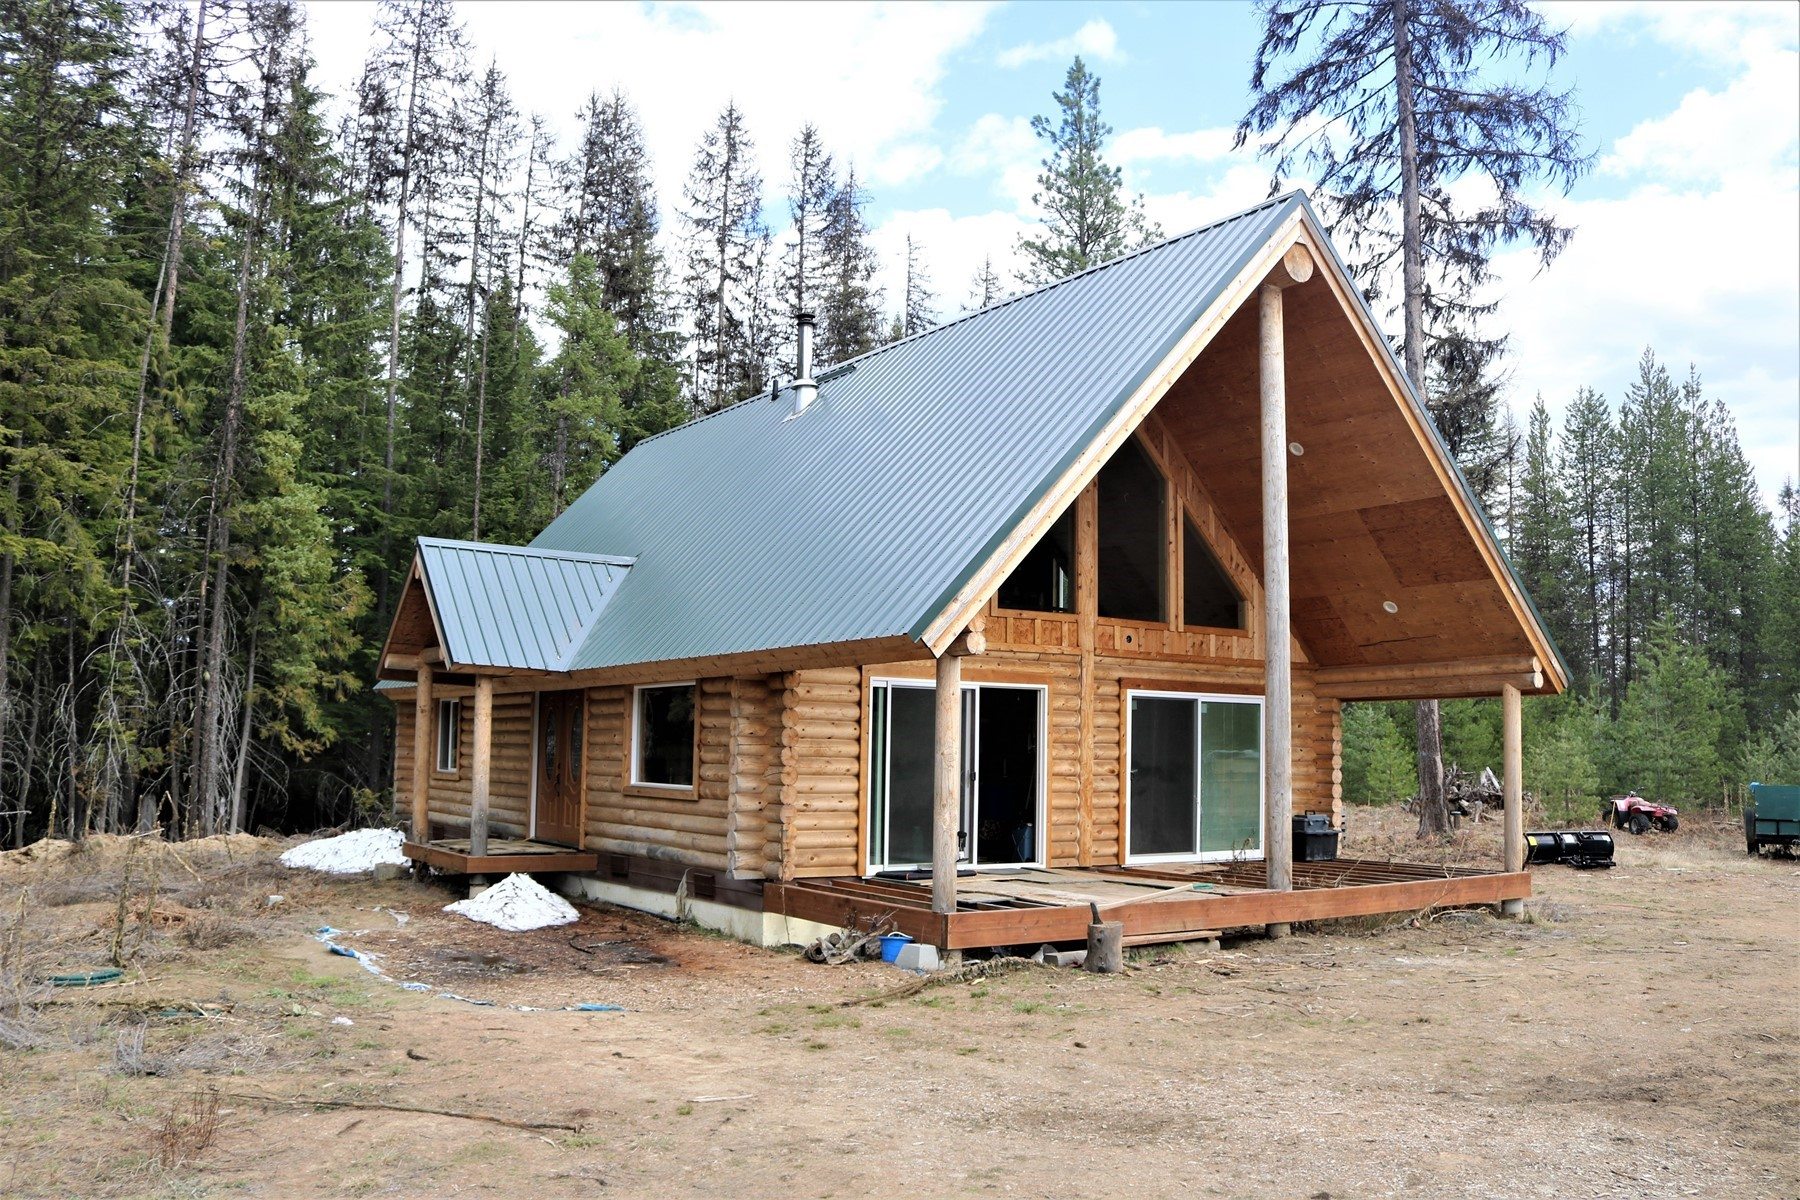 Single Family Homes for Sale at Log Home on Acreage 3882 Gleason Mc Abee Rd Priest River, Idaho 83856 United States